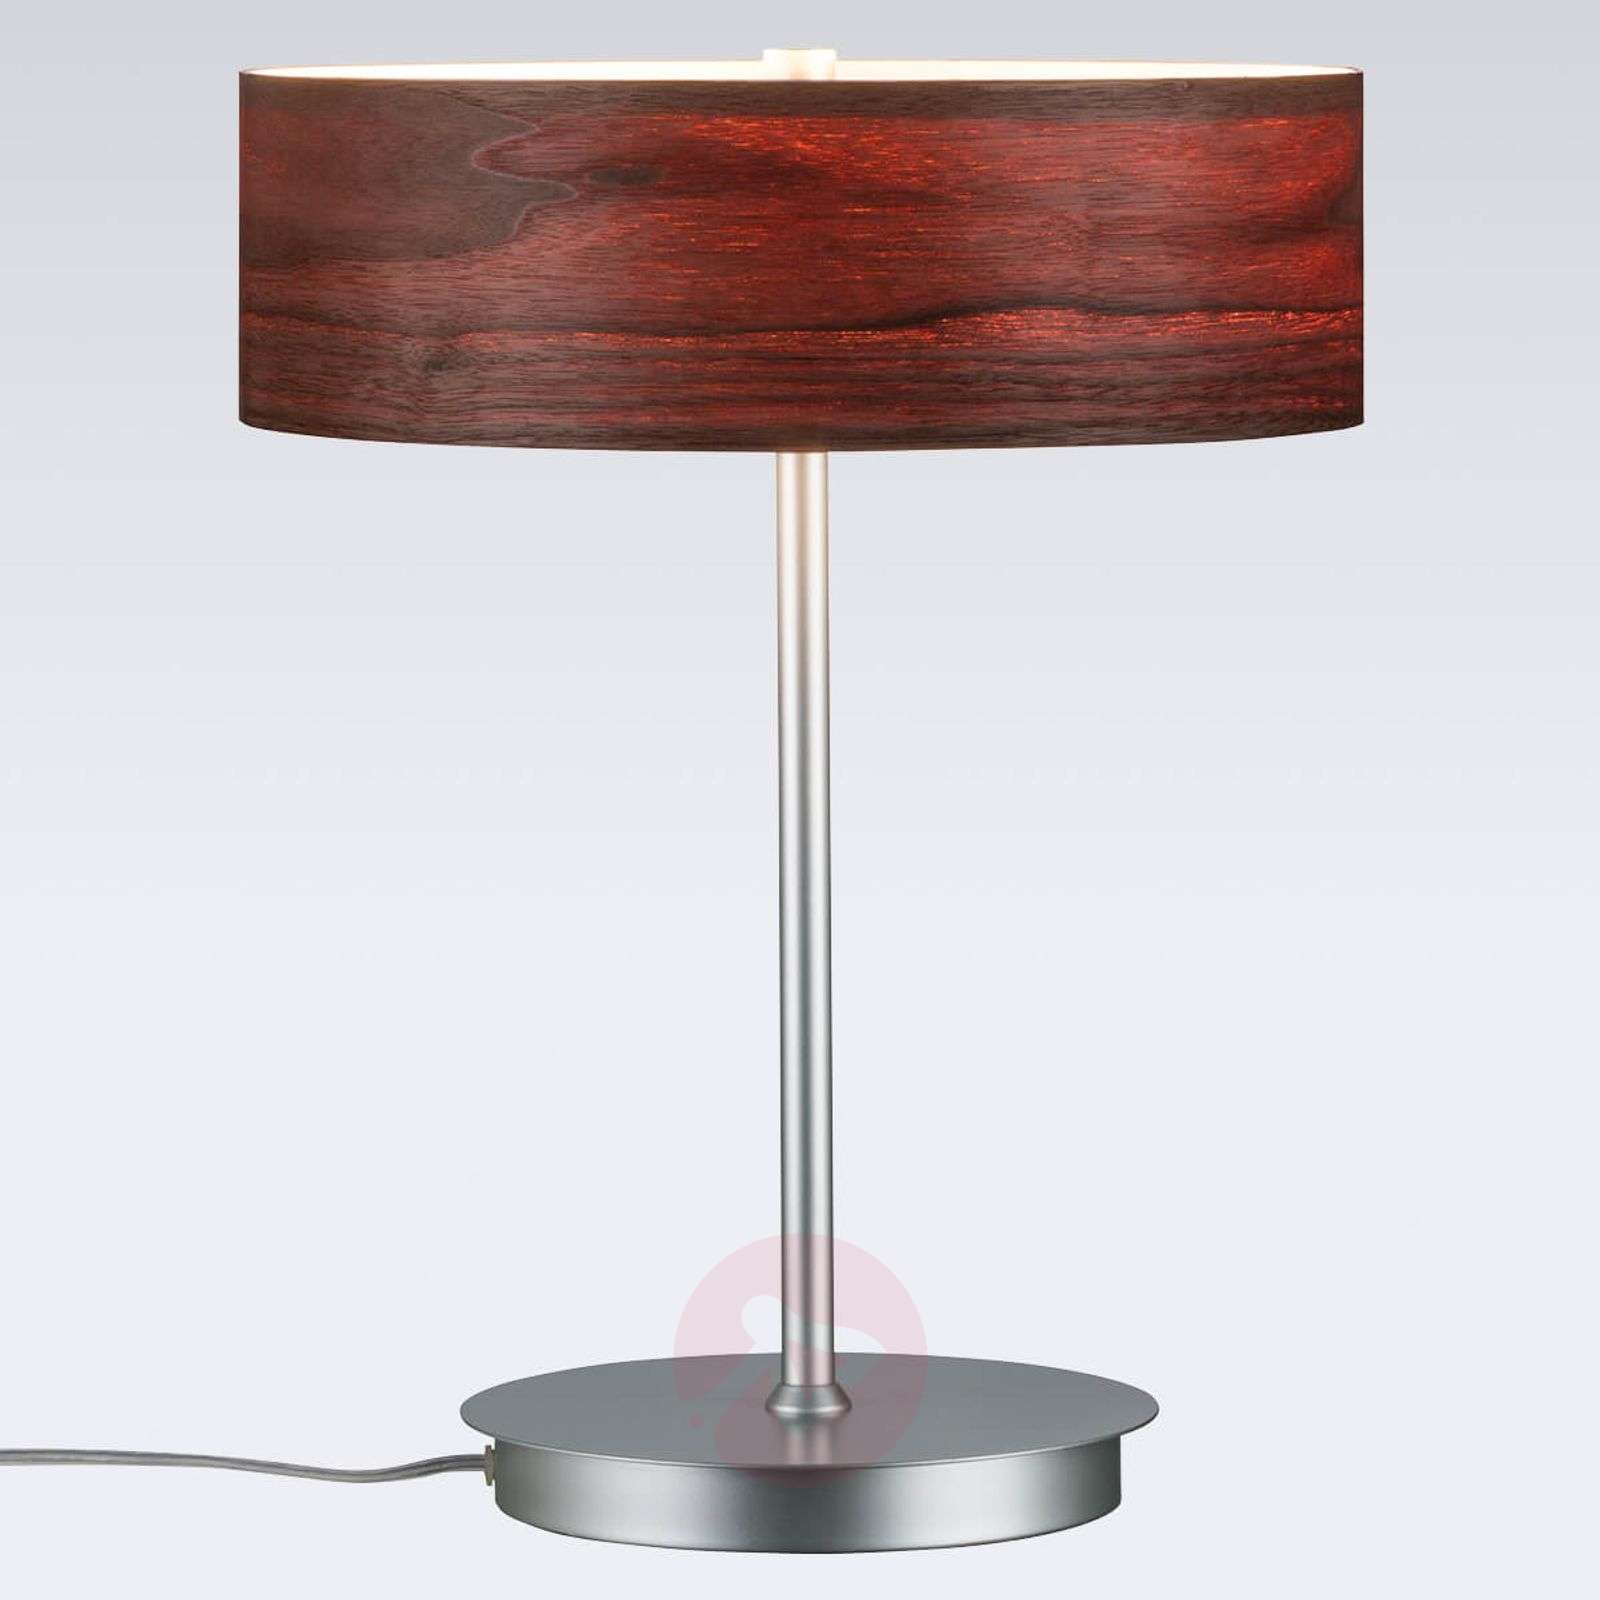 Liska chic table lamp with wooden lampshade lights liska chic table lamp with wooden lampshade 7601064 01 aloadofball Image collections